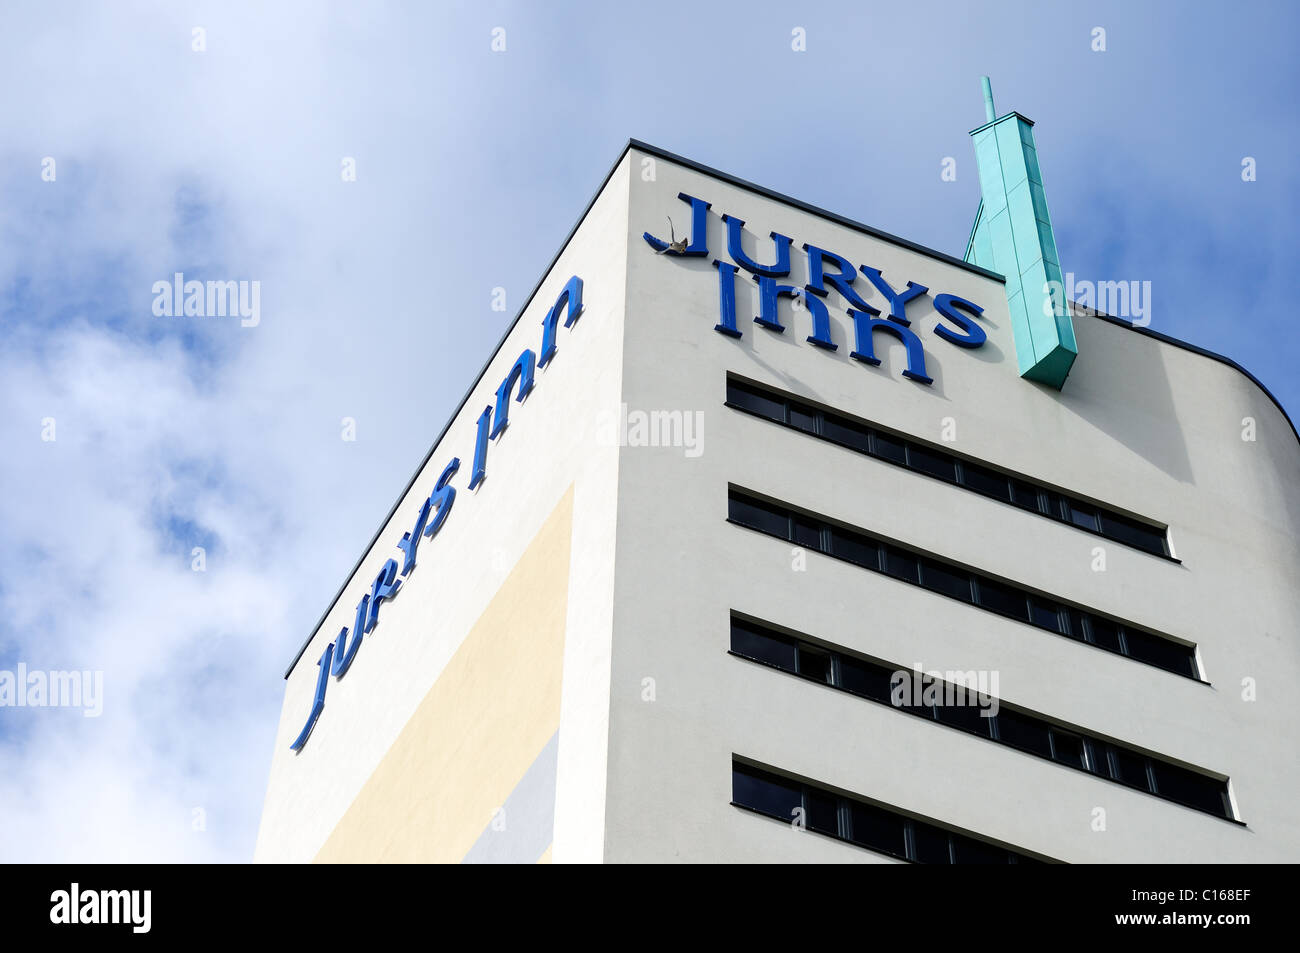 Derby Hotel Stock Photos & Derby Hotel Stock Images - Alamy